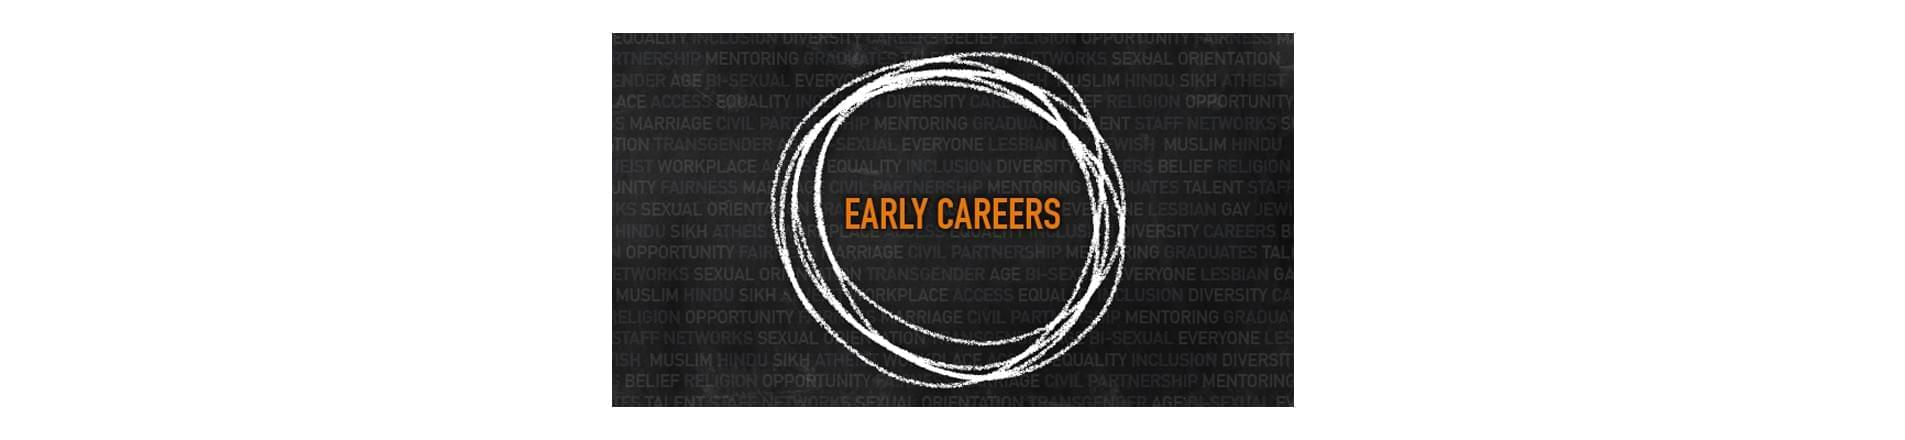 the text 'Early Careers'